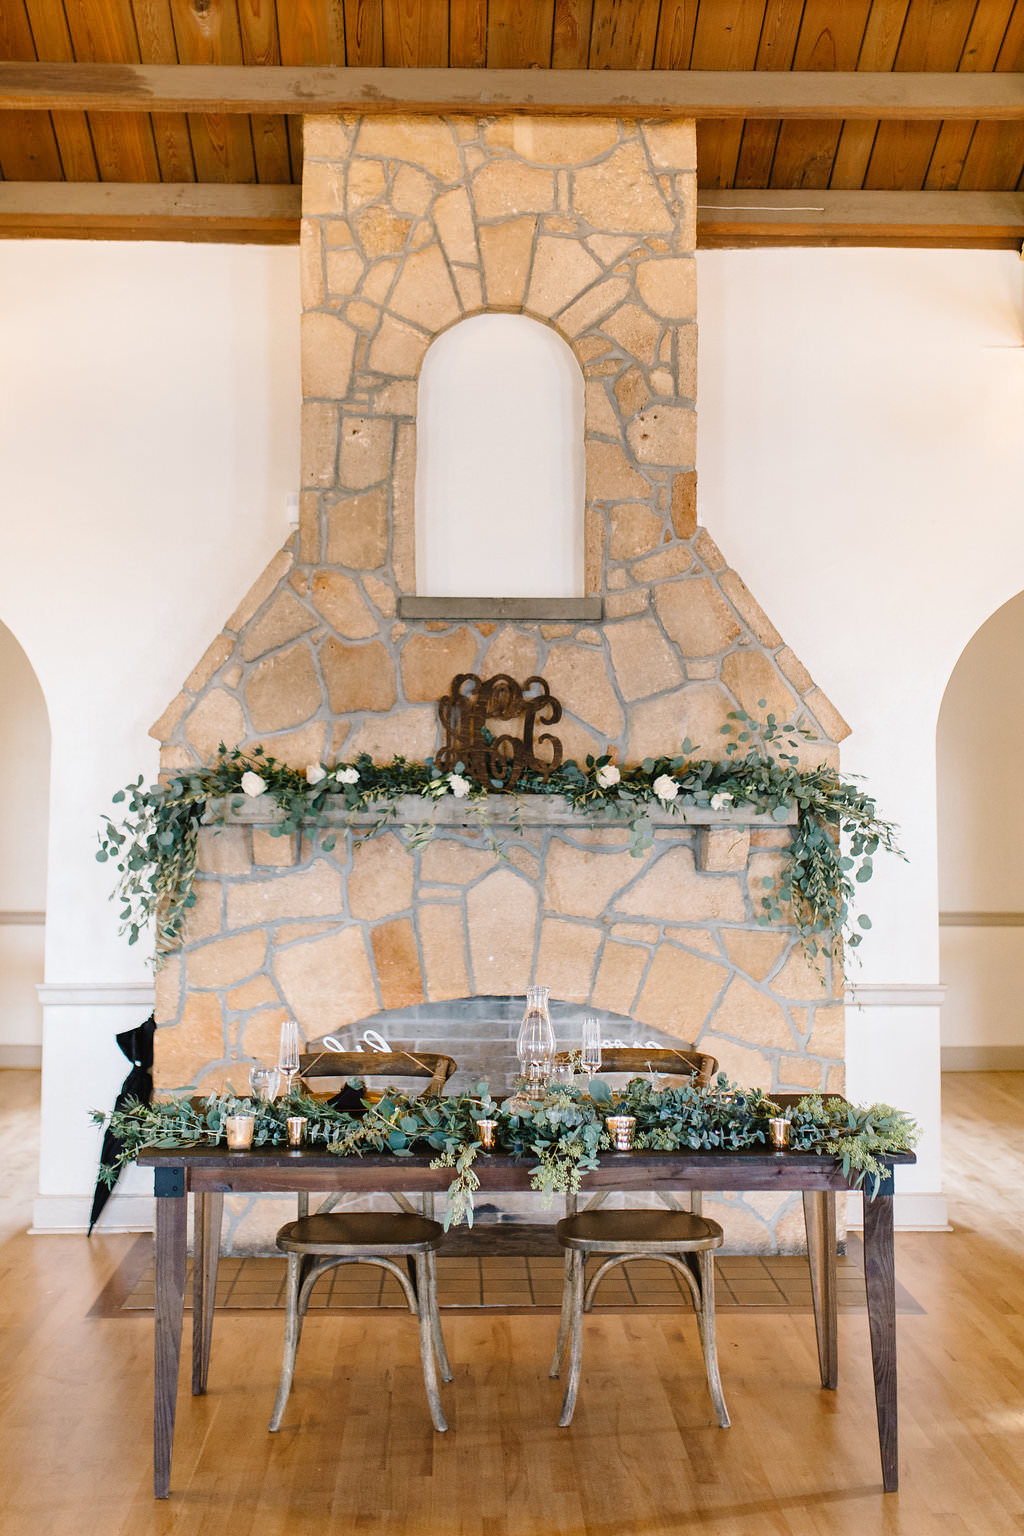 Vintage Rustic Whimsical Inspired Wedding Reception Decor, Wooden Table with Wooden Chiavari Chairs, Greenery Garland Sweetheart Table, Brick Fireplace Backdrop with Greenery Garland and White Florals   Tampa Bay Wedding Planner Love Lee Lane   Lakeland Wedding Venue Magnolia Building